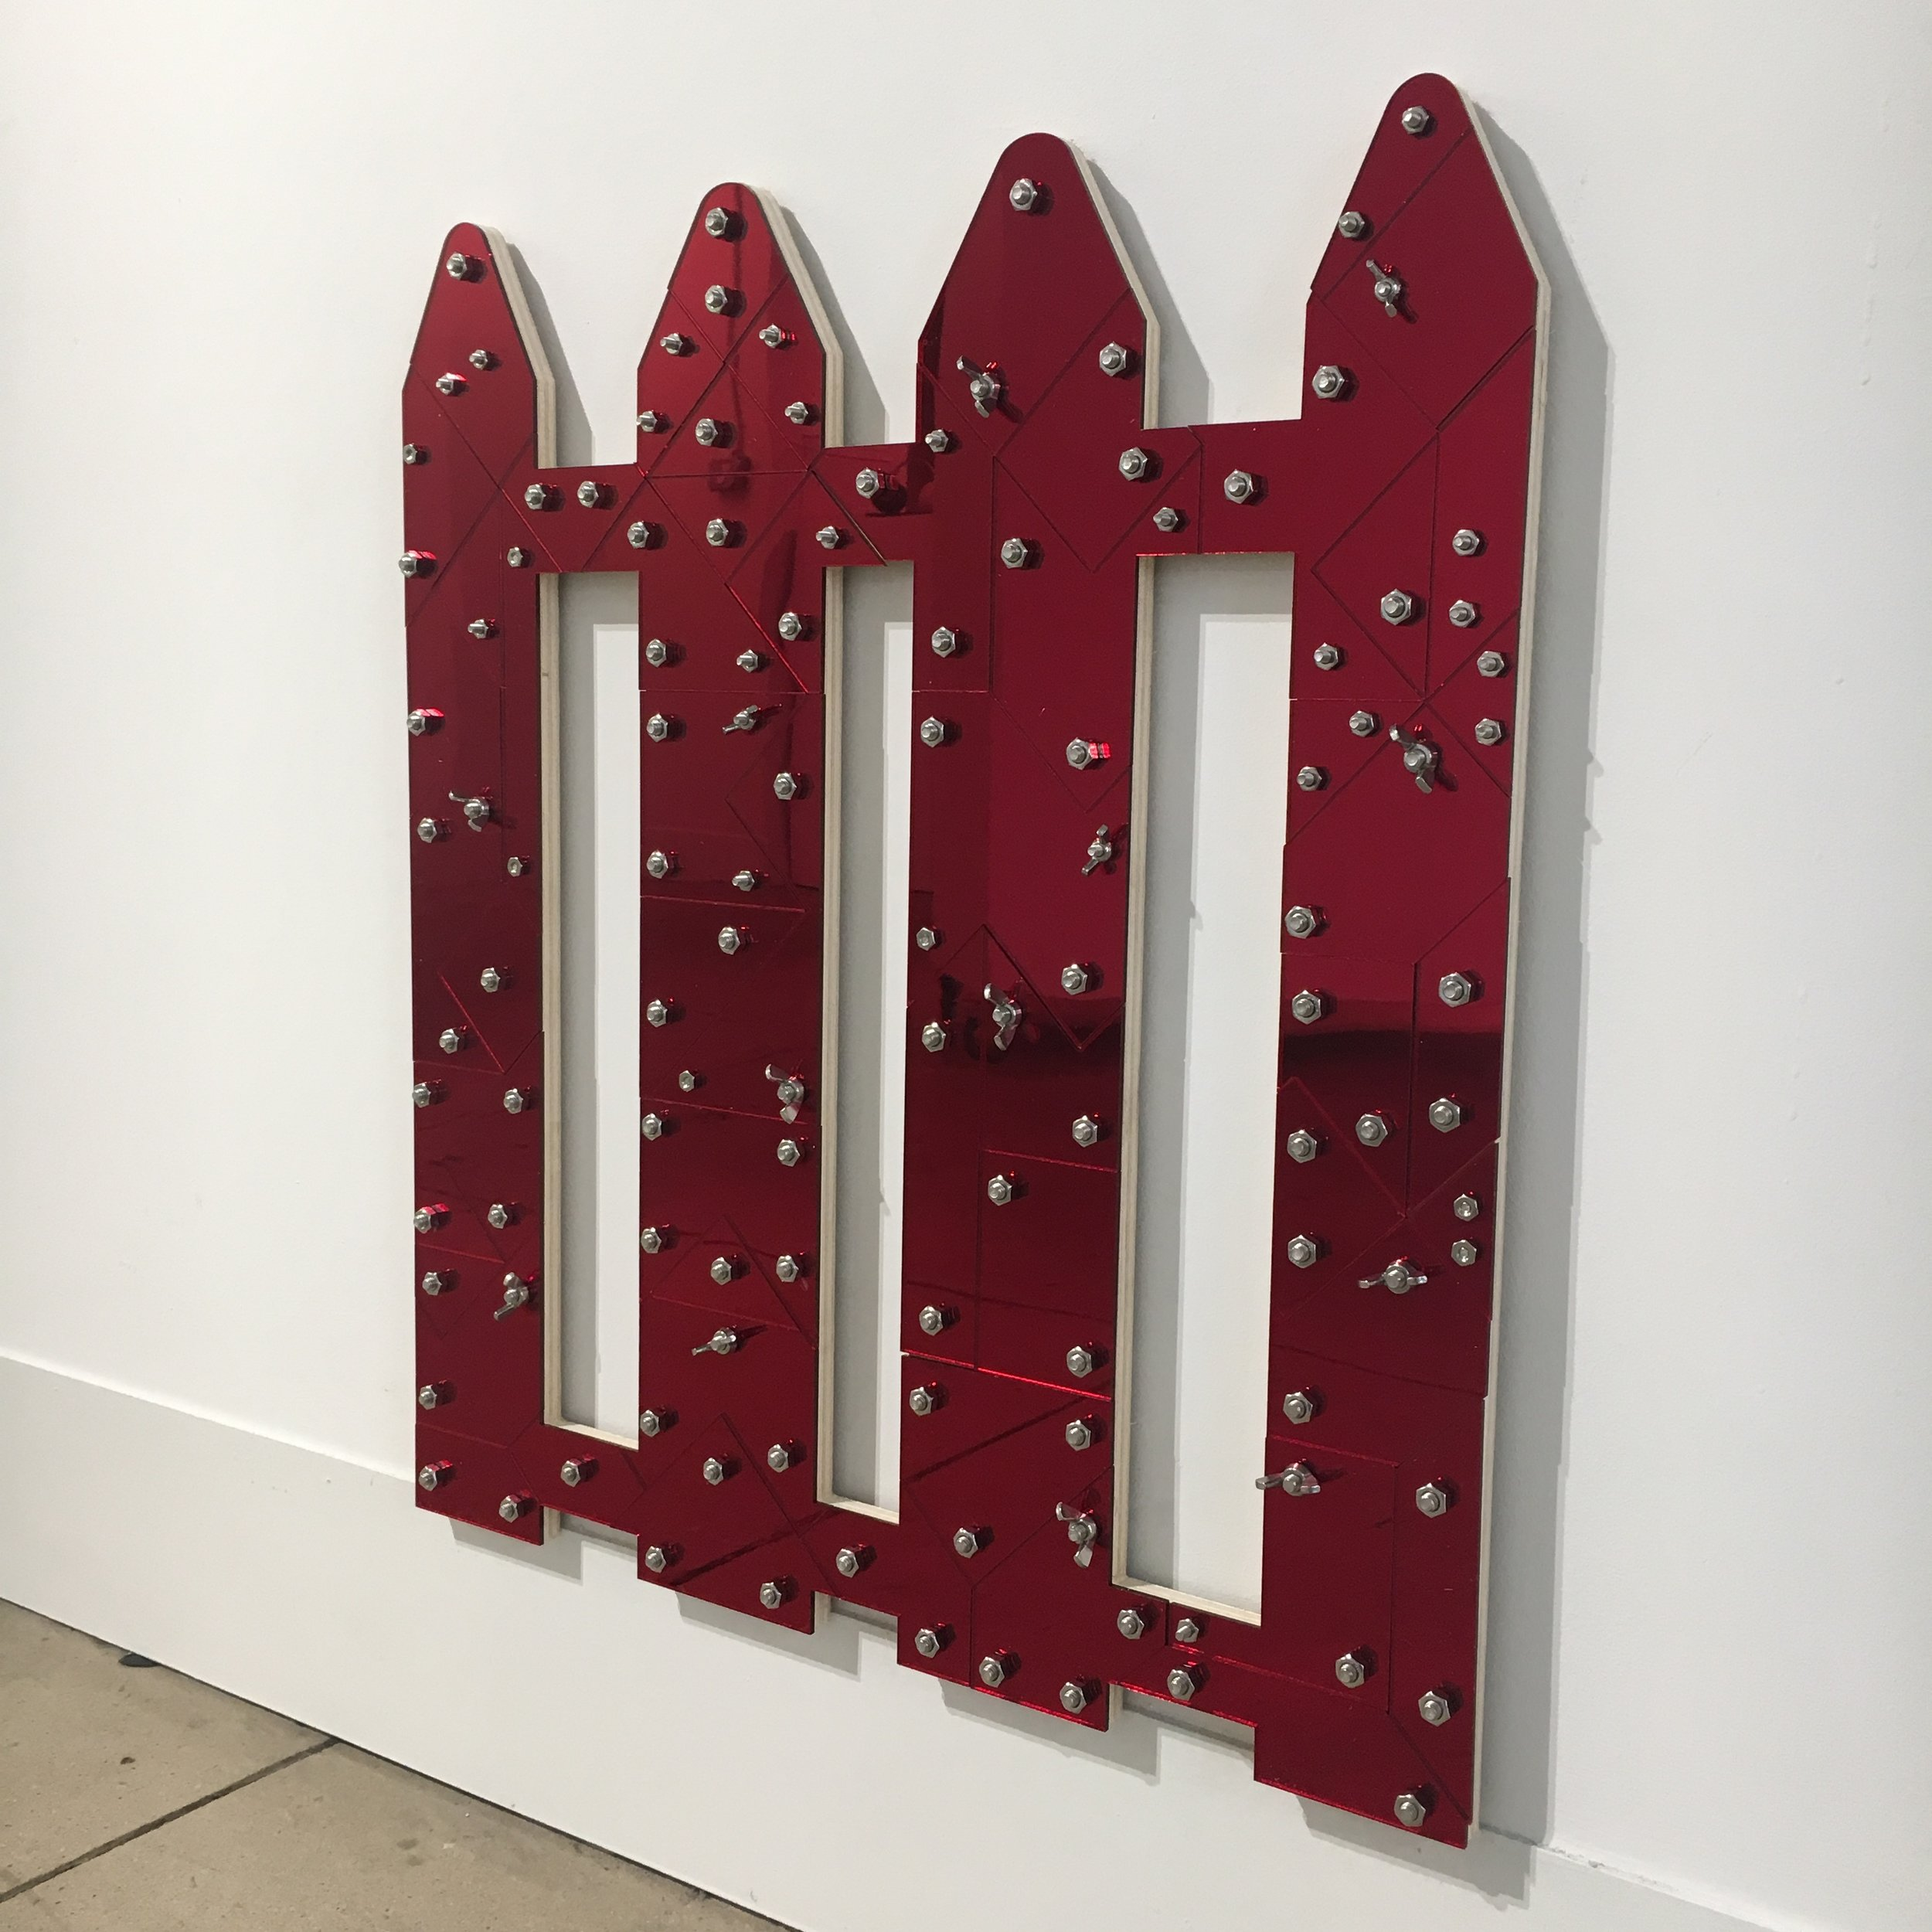 Red Line (Blackamoors Collage #172)   Plexiglass, Mirror, Stainless Steel and red oak board 24 x 21 1/2 in